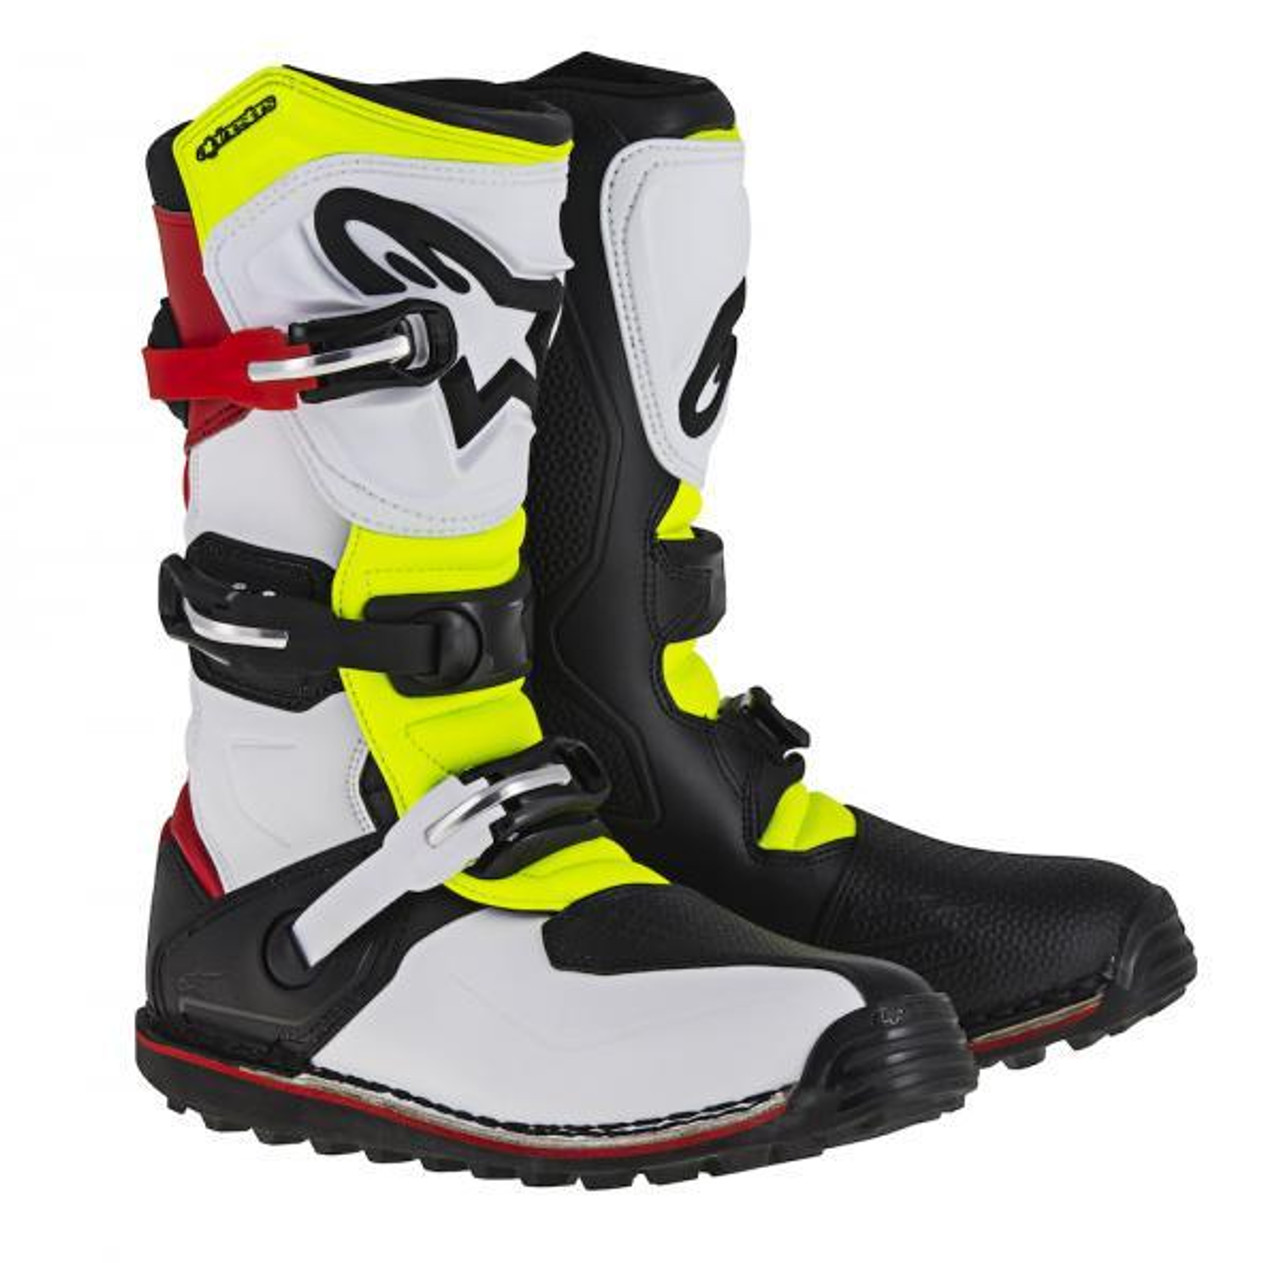 Alpinestars Tech T boots in white/ red/ fluo yellow